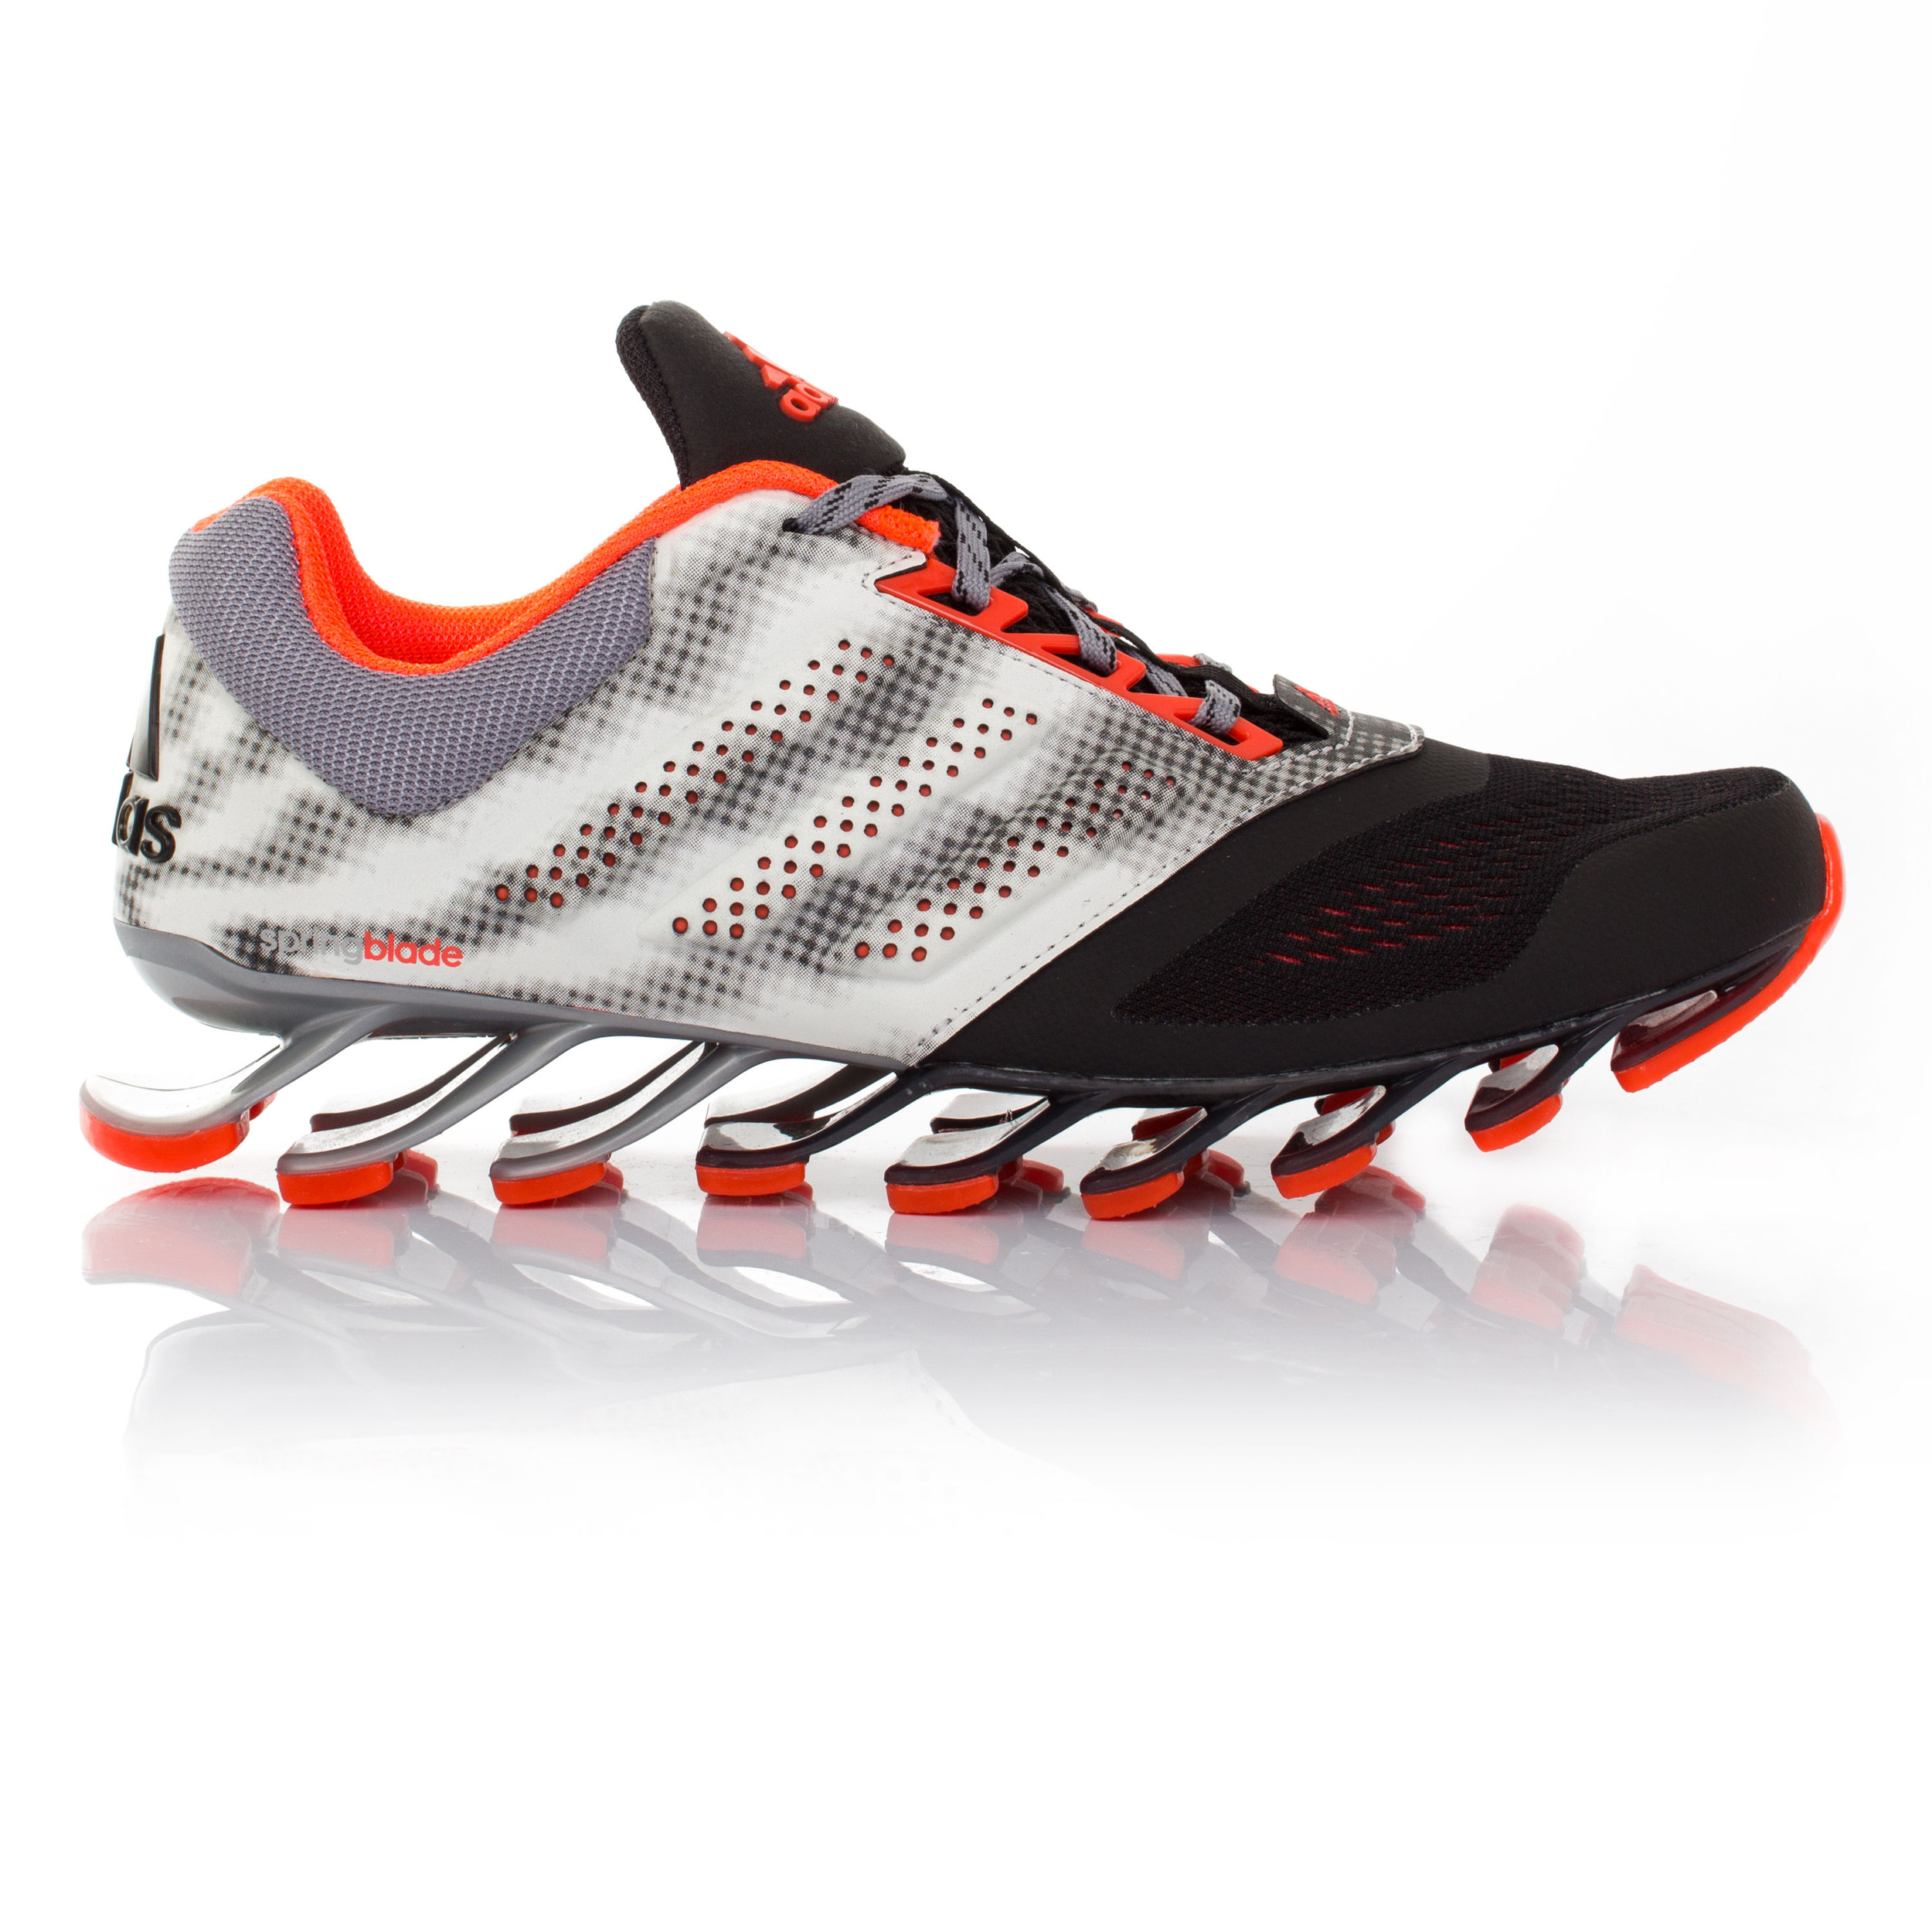 quality design 61b27 fdf49 ... Adidas-Springblade-Drive-2-Mens-White-Black-Running- Christmas Adidas  Springblade Razor Running Shoes ...